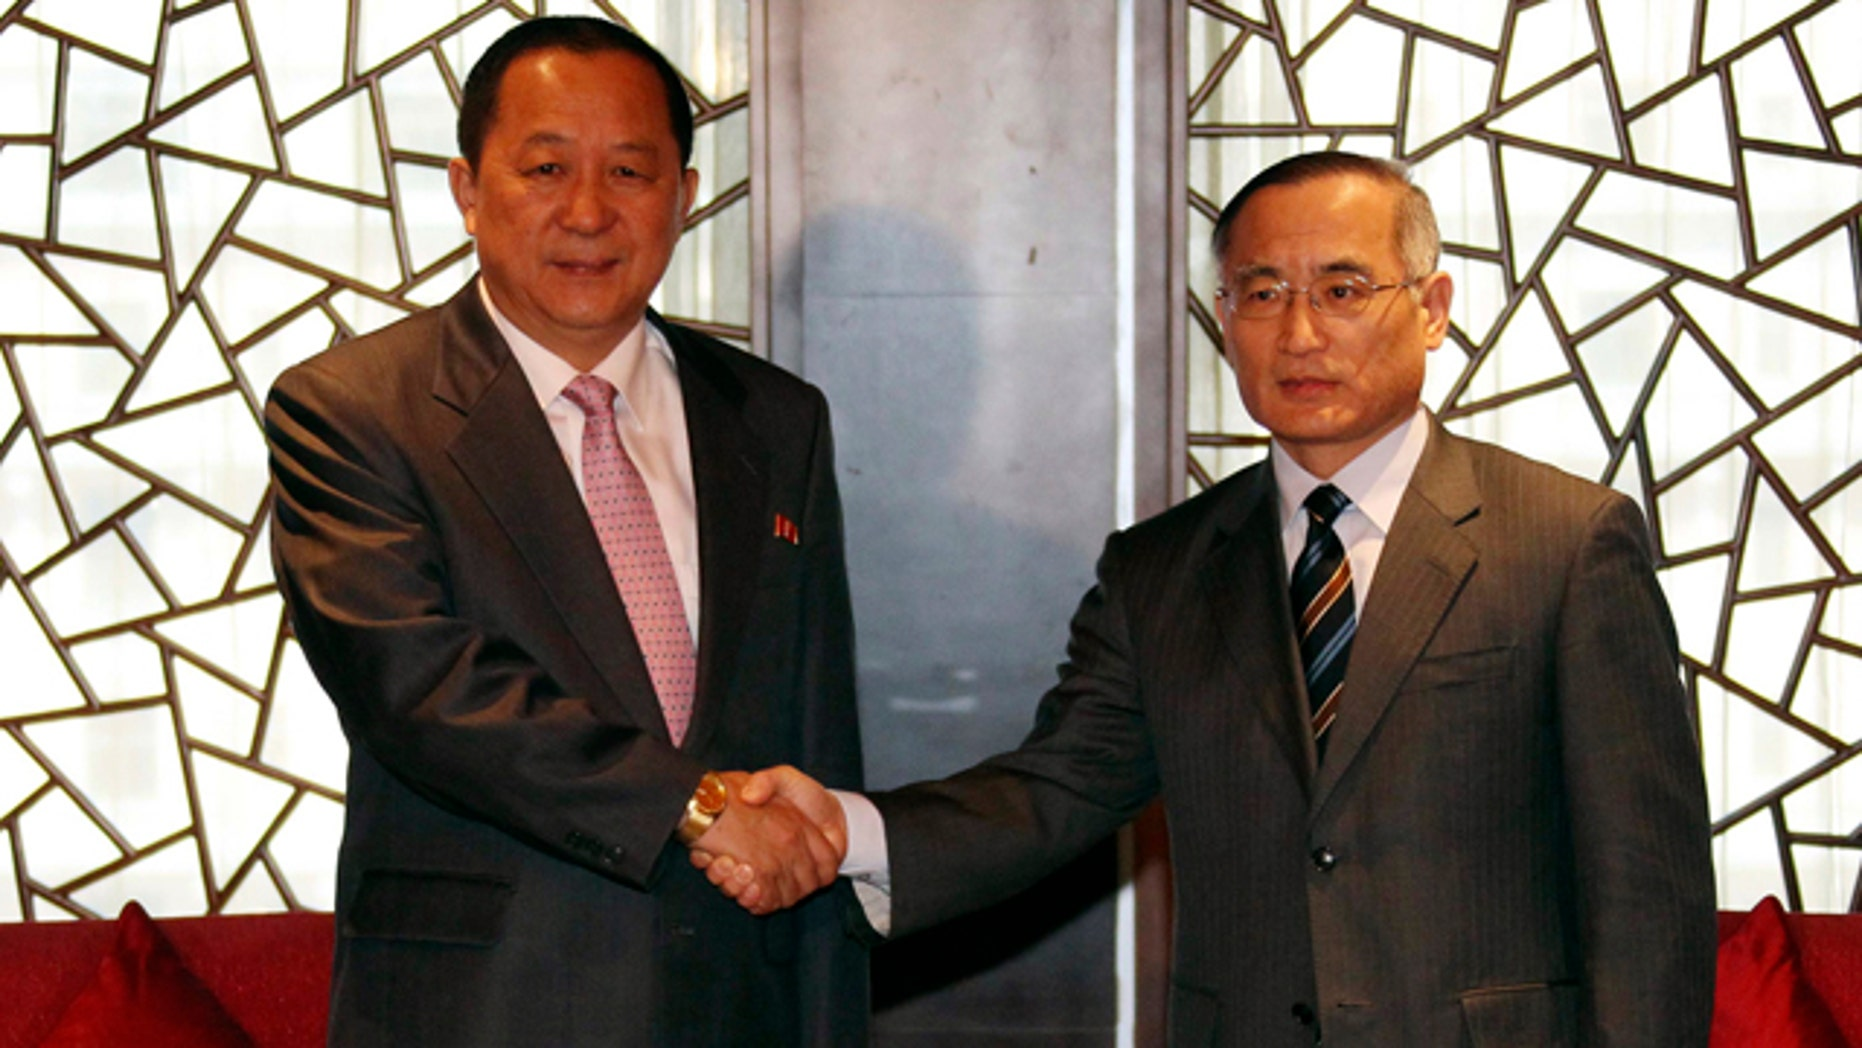 Sept. 21: South Korean nuclear envoy Wi Sung-lac, right, shakes hands with his North Korea's counterpart Ri Yong Ho at the private Chang An Club in Beijing, China.